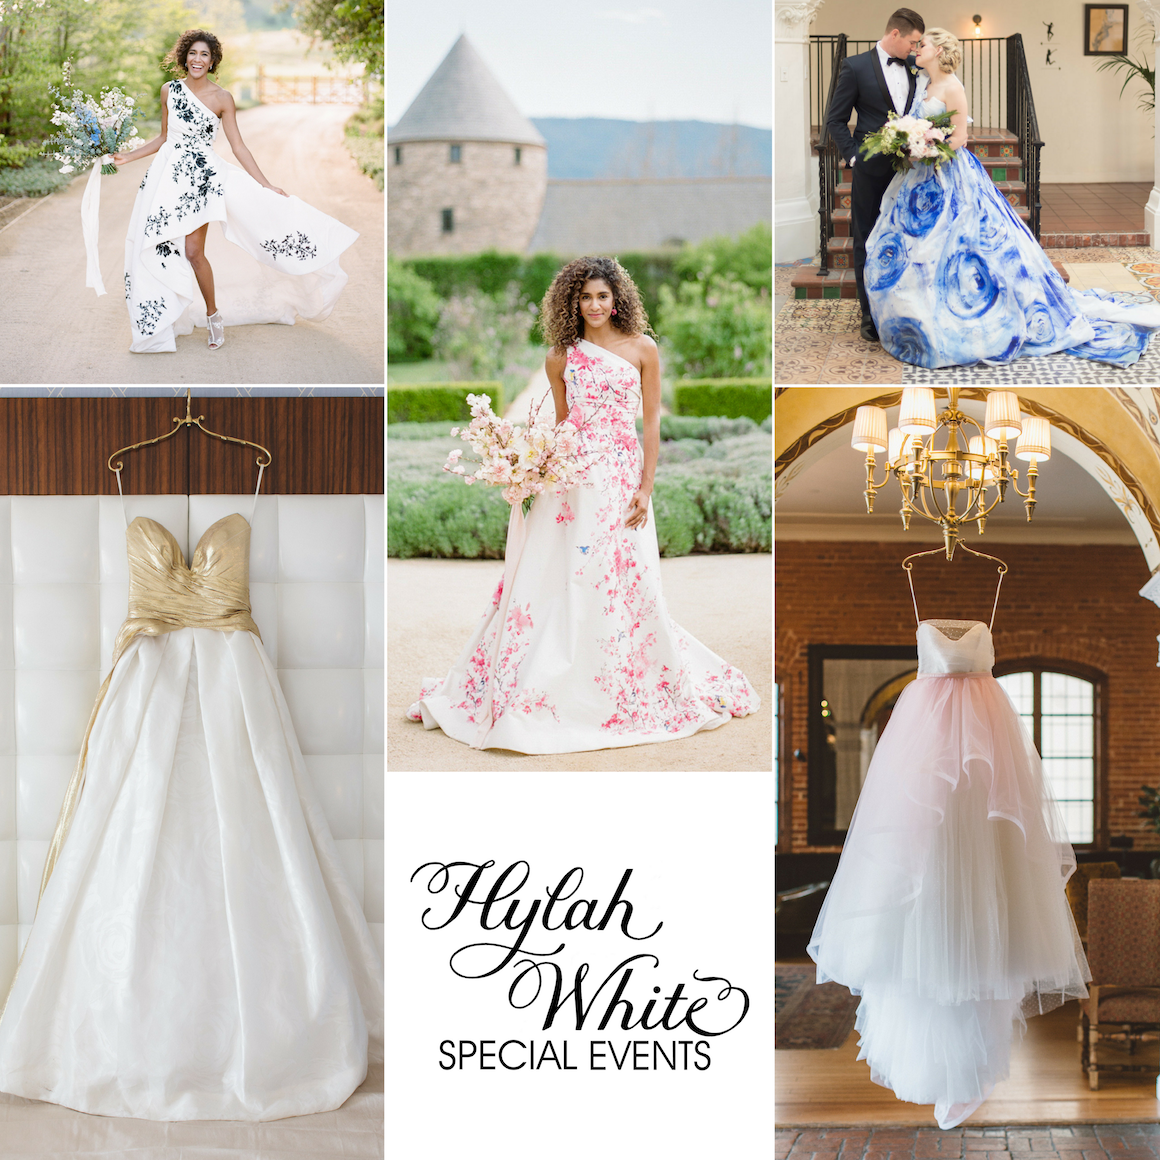 What Colours Not To Wear To A Wedding: The Colored Wedding Dresses Trend